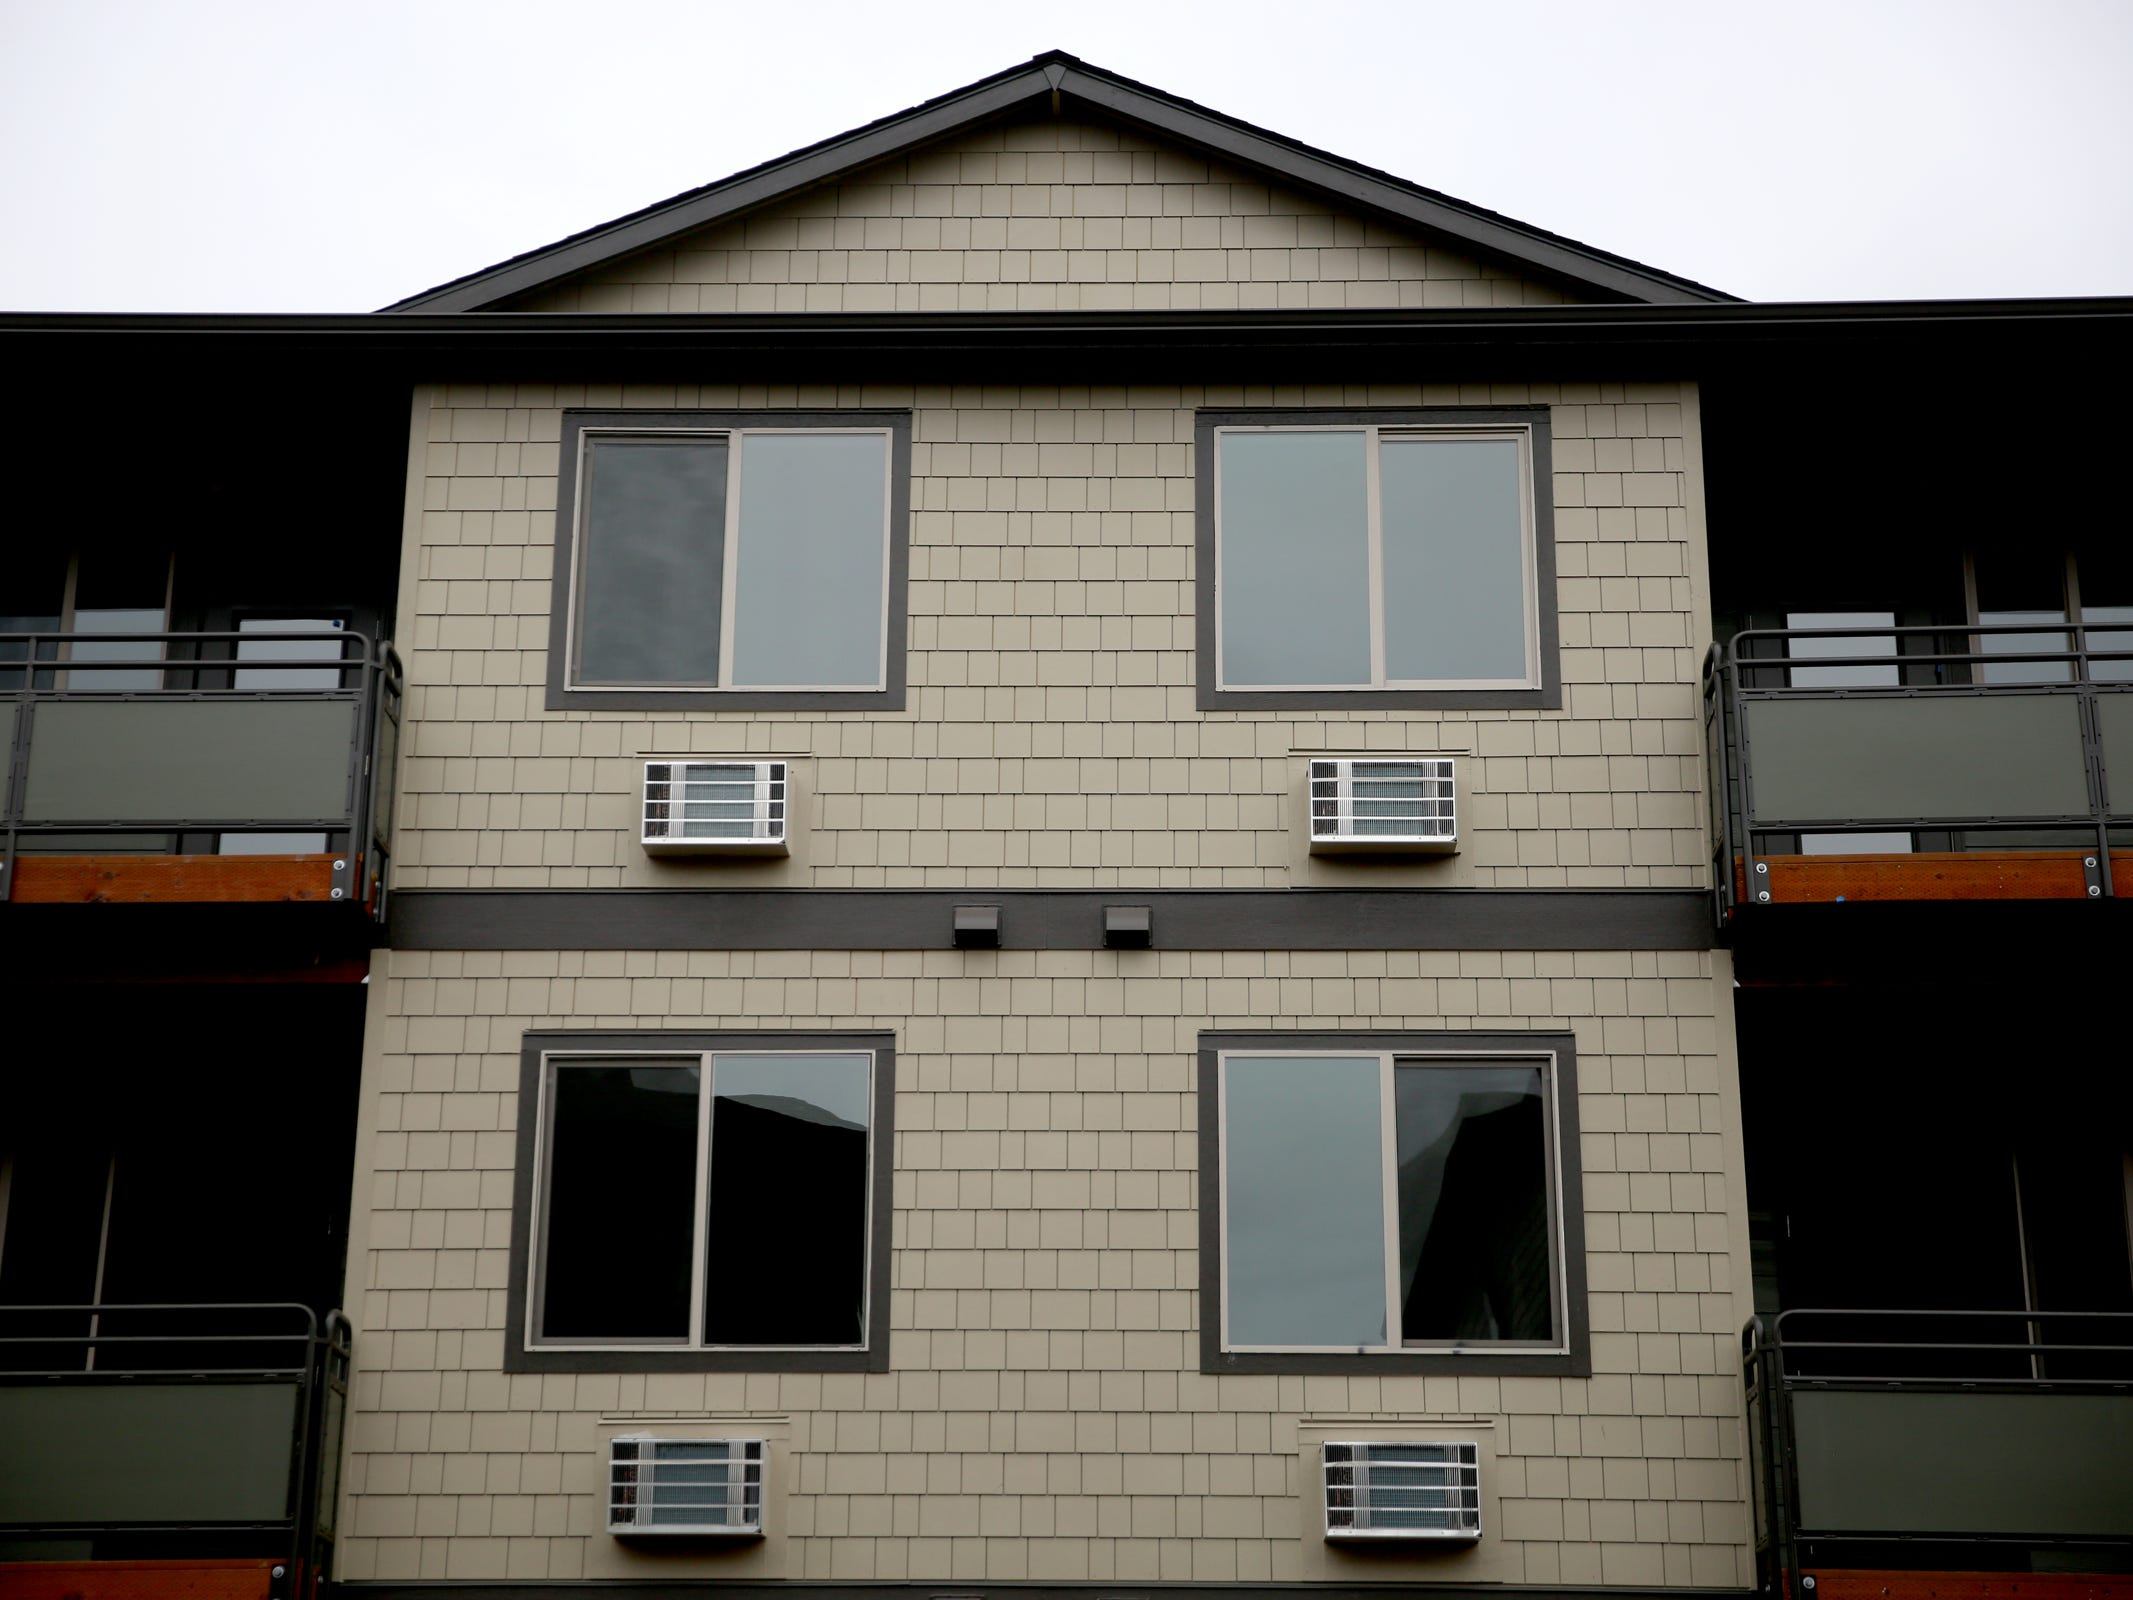 Air conditioning units under apartment windows at the Cornerstone Apartments in Salem on Wednesday, Jan. 16, 2019. The state is looking to reduce the energy burden for low-income Oregonians, including tenants at Cornerstone, who must live at or less than 60 percent of the area's median household income.